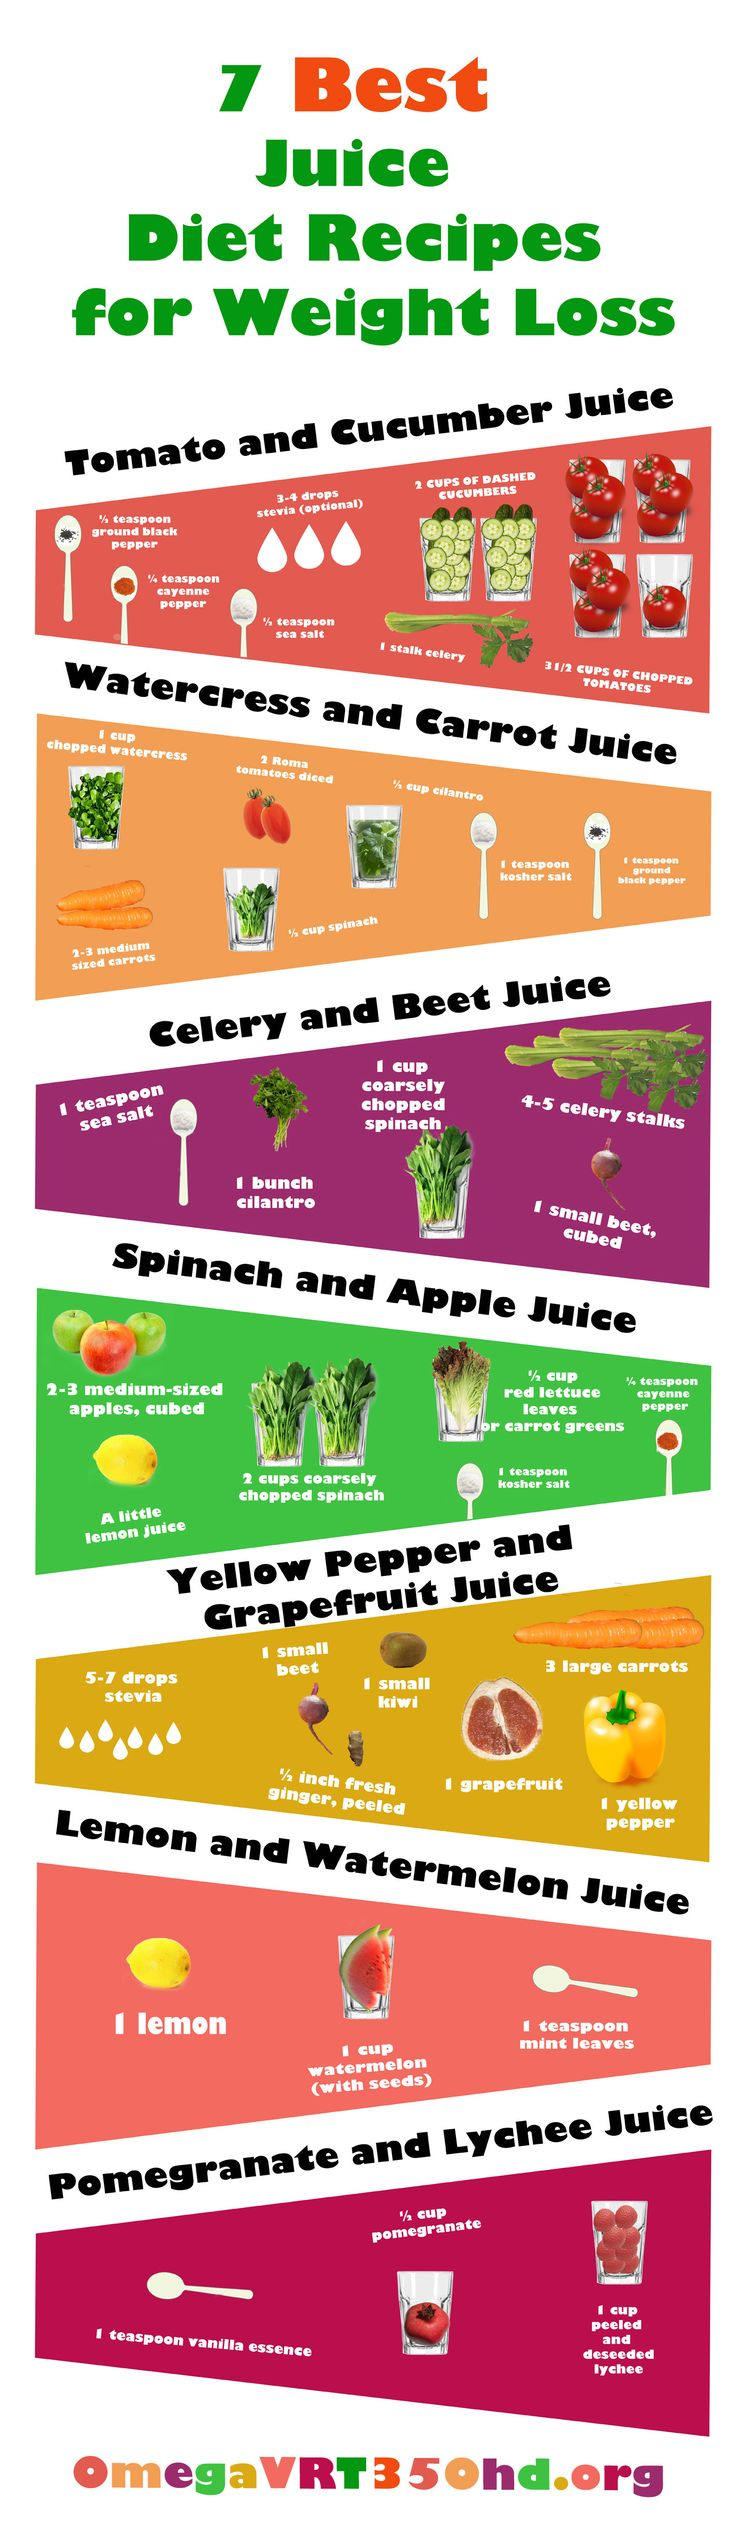 7 Creative and Tasty Juicing Recipes for Weight Loss